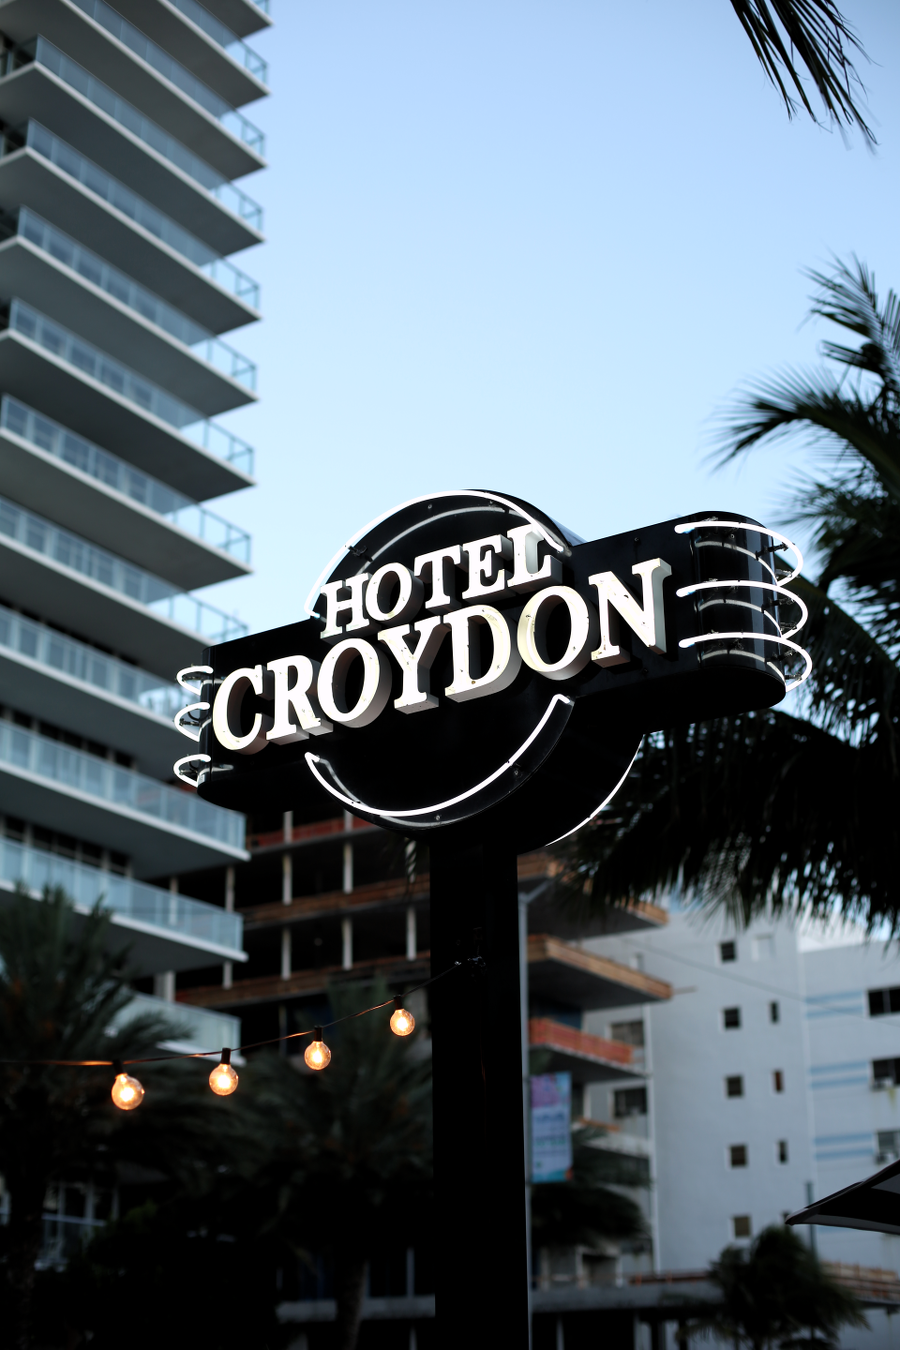 Hotel Croydon Miami Beach My Travel Guide Is Now Up On Thedashingrider